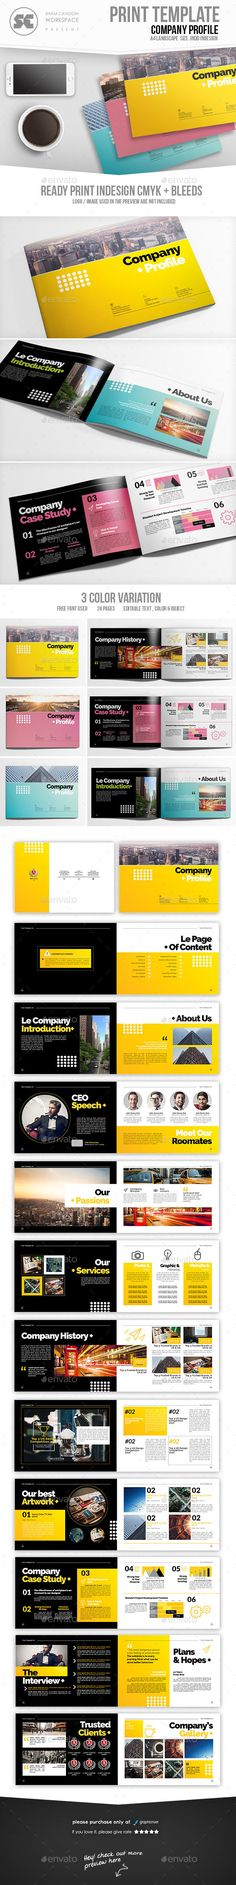 Company Profile - Landscape Company profile design, Company - company profile sample download